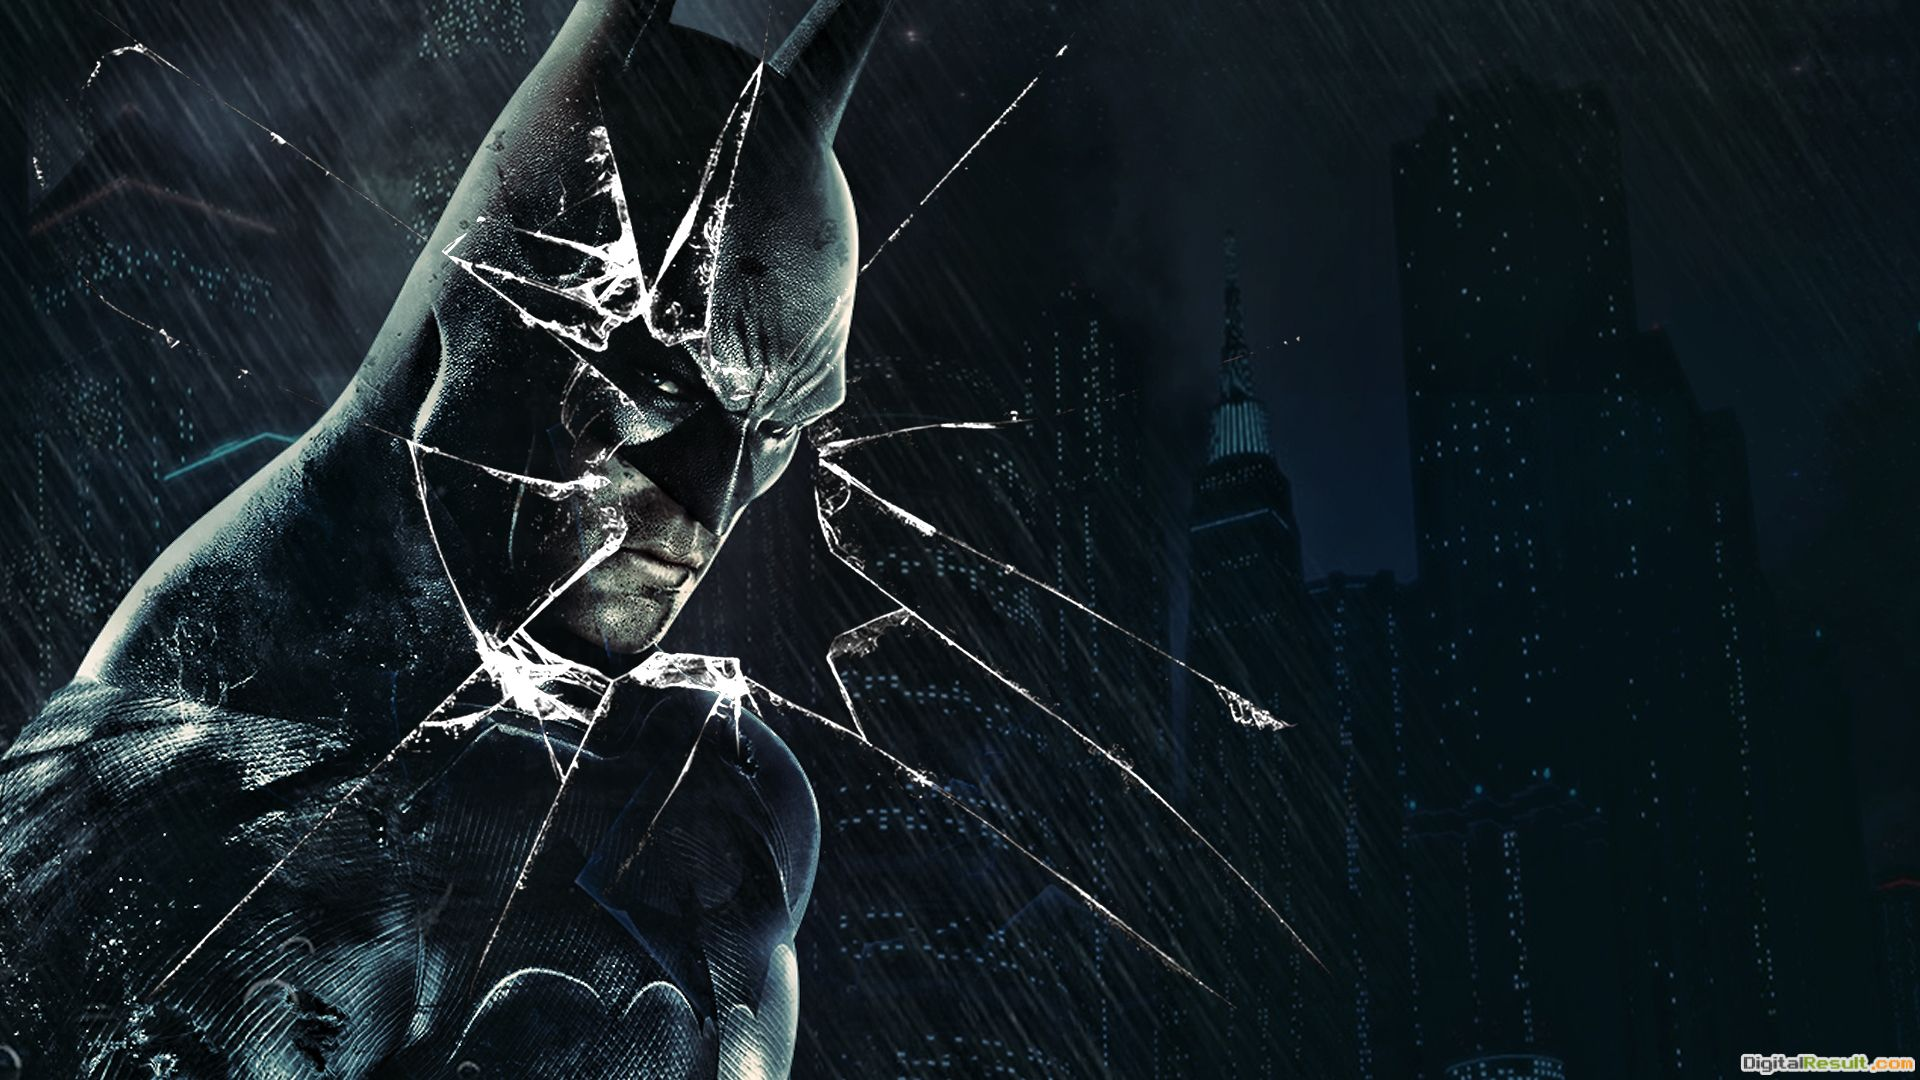 Batman City Broken Glass Entertainment hd wallpaper #1473824 1573